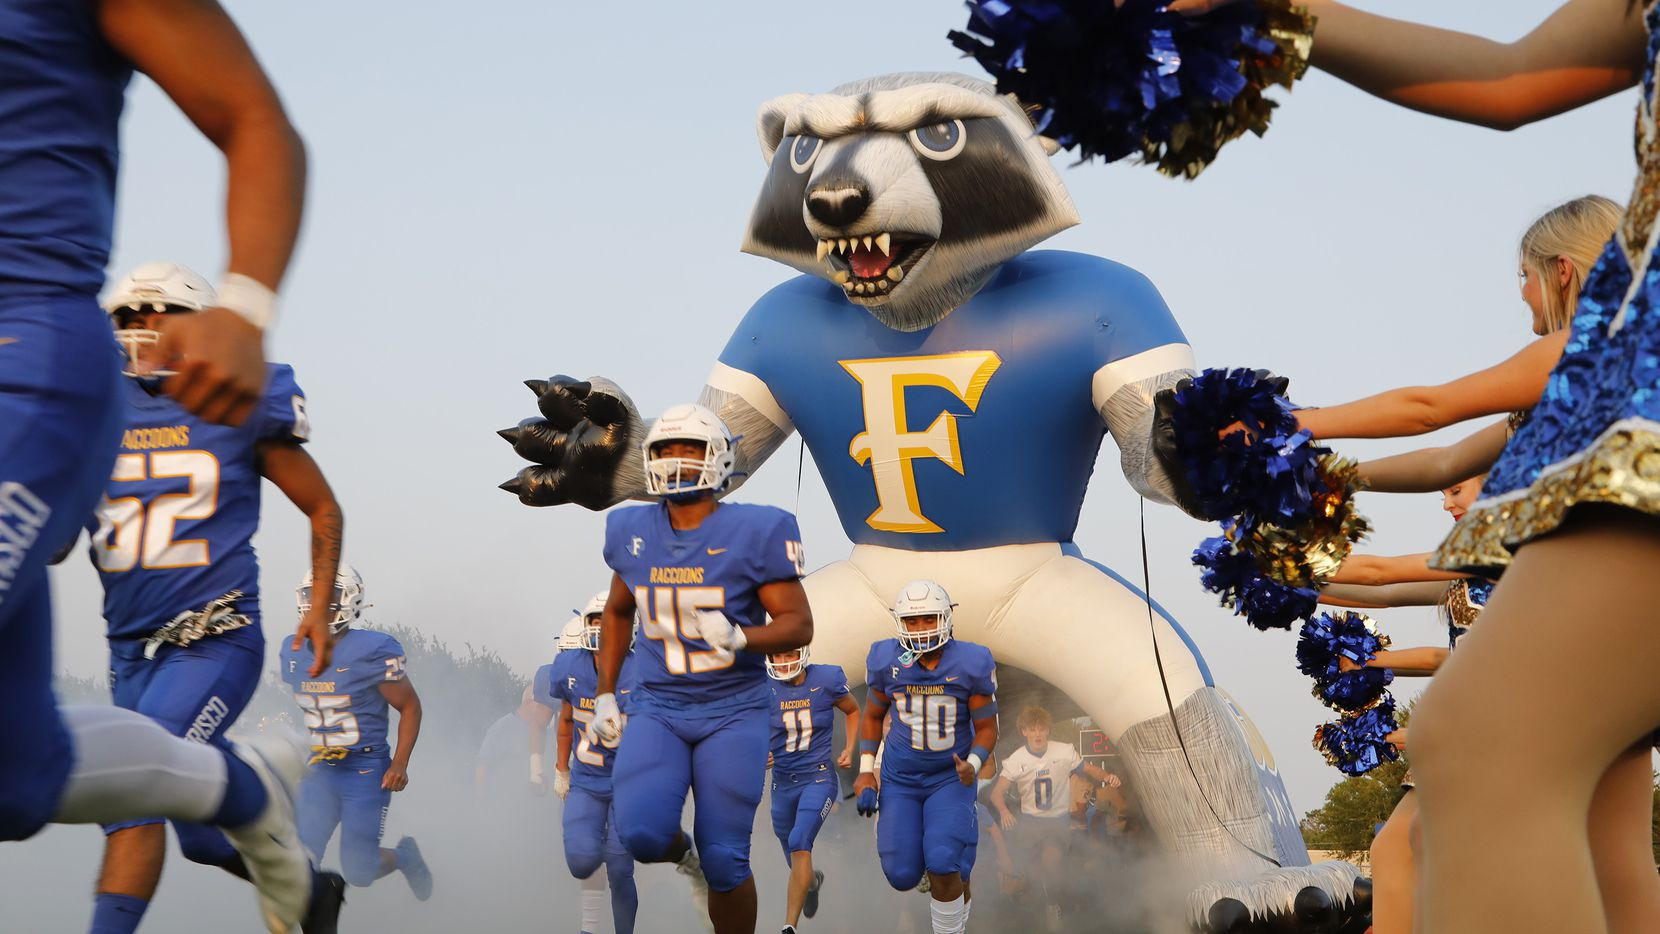 The Frisco High School football team takes the field as Frisco High School hosted Lake Dallas High School at Kuykendall Stadium in Frisco on Friday evening, September 10, 2021. (Stewart F. House/Special Contributor)